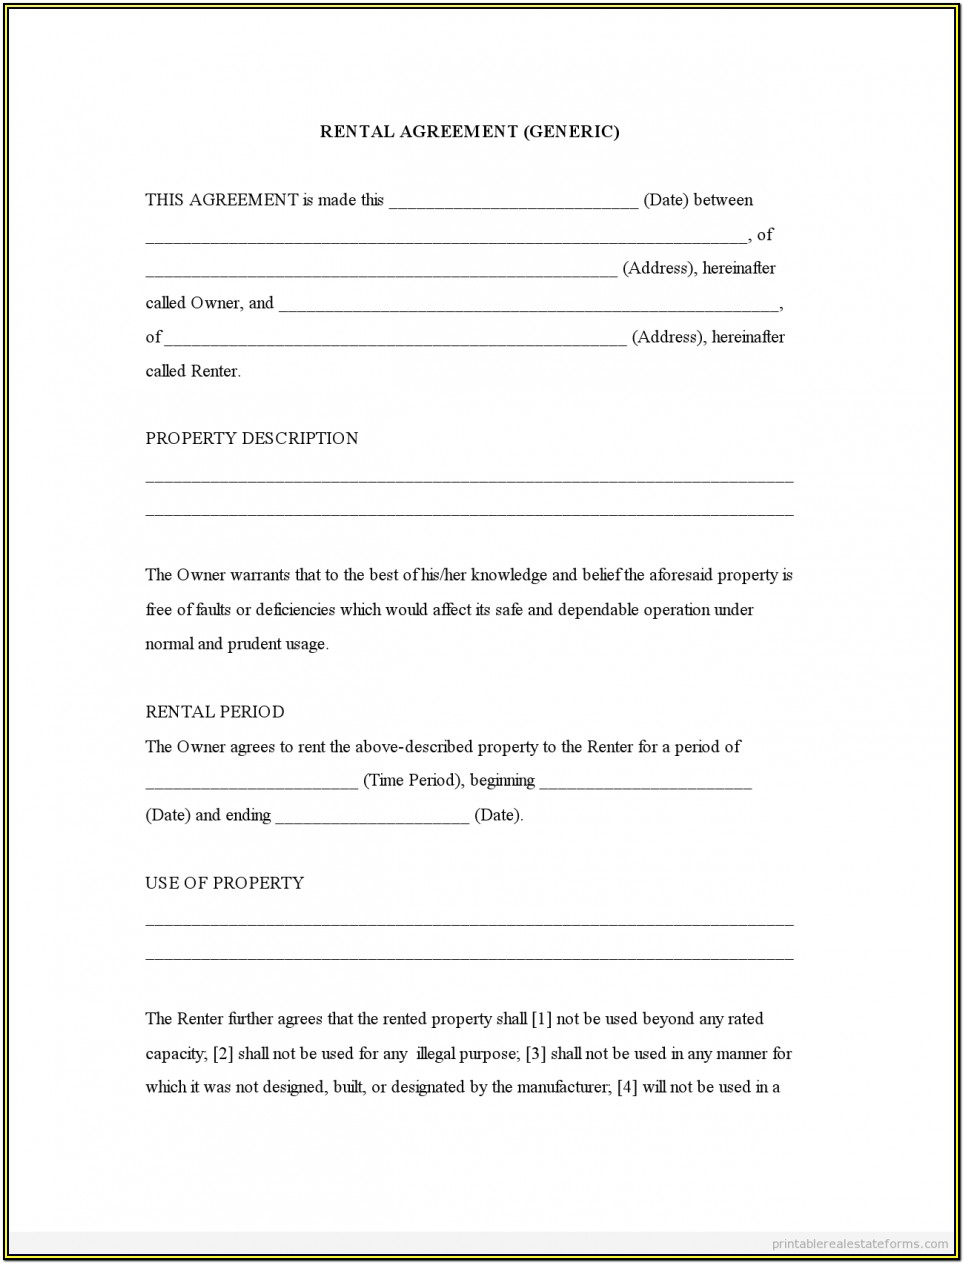 Generic Rental Agreement Form